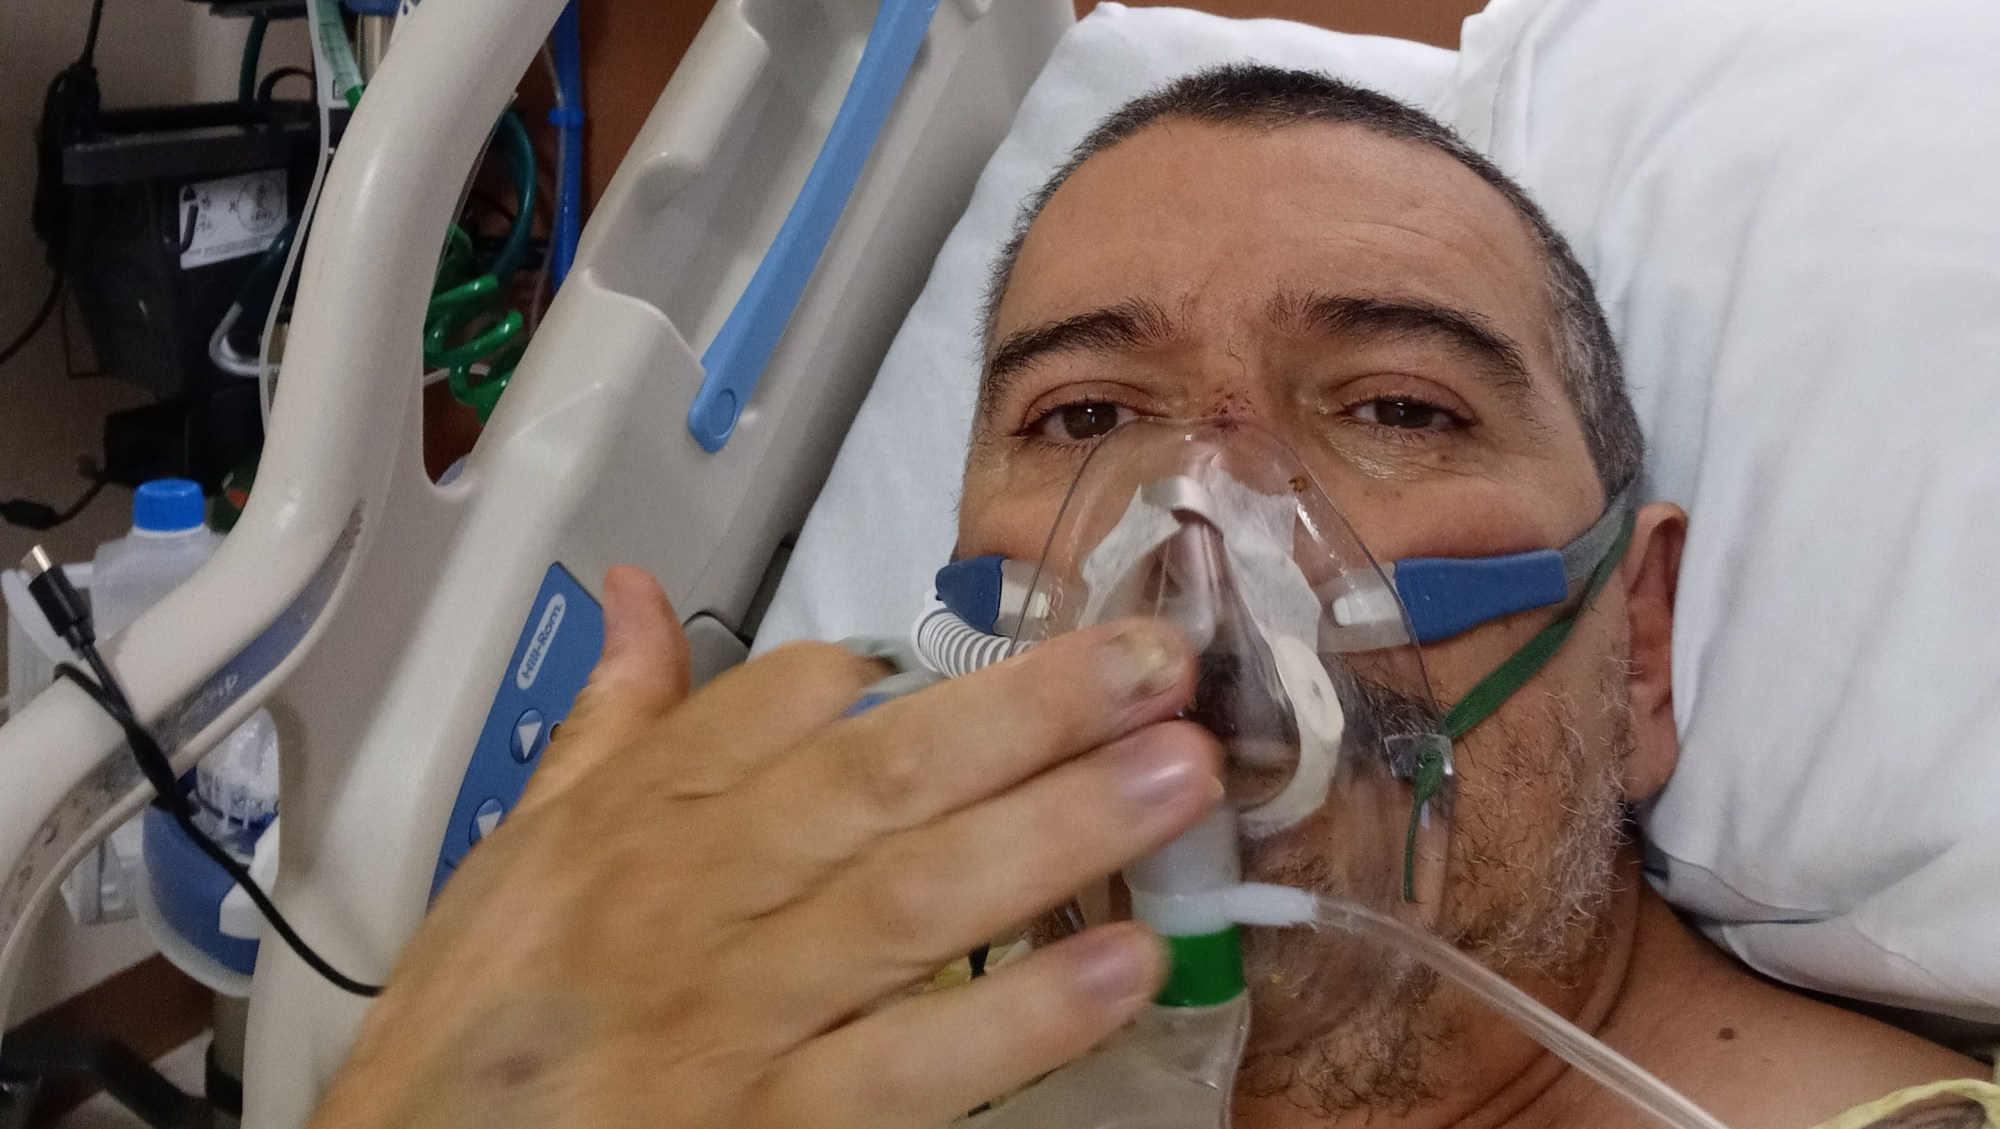 Ruben Gonzalez, shown in this undated photo, spent three months in the ICU after he contracted COVID-19. (GoFundMe)